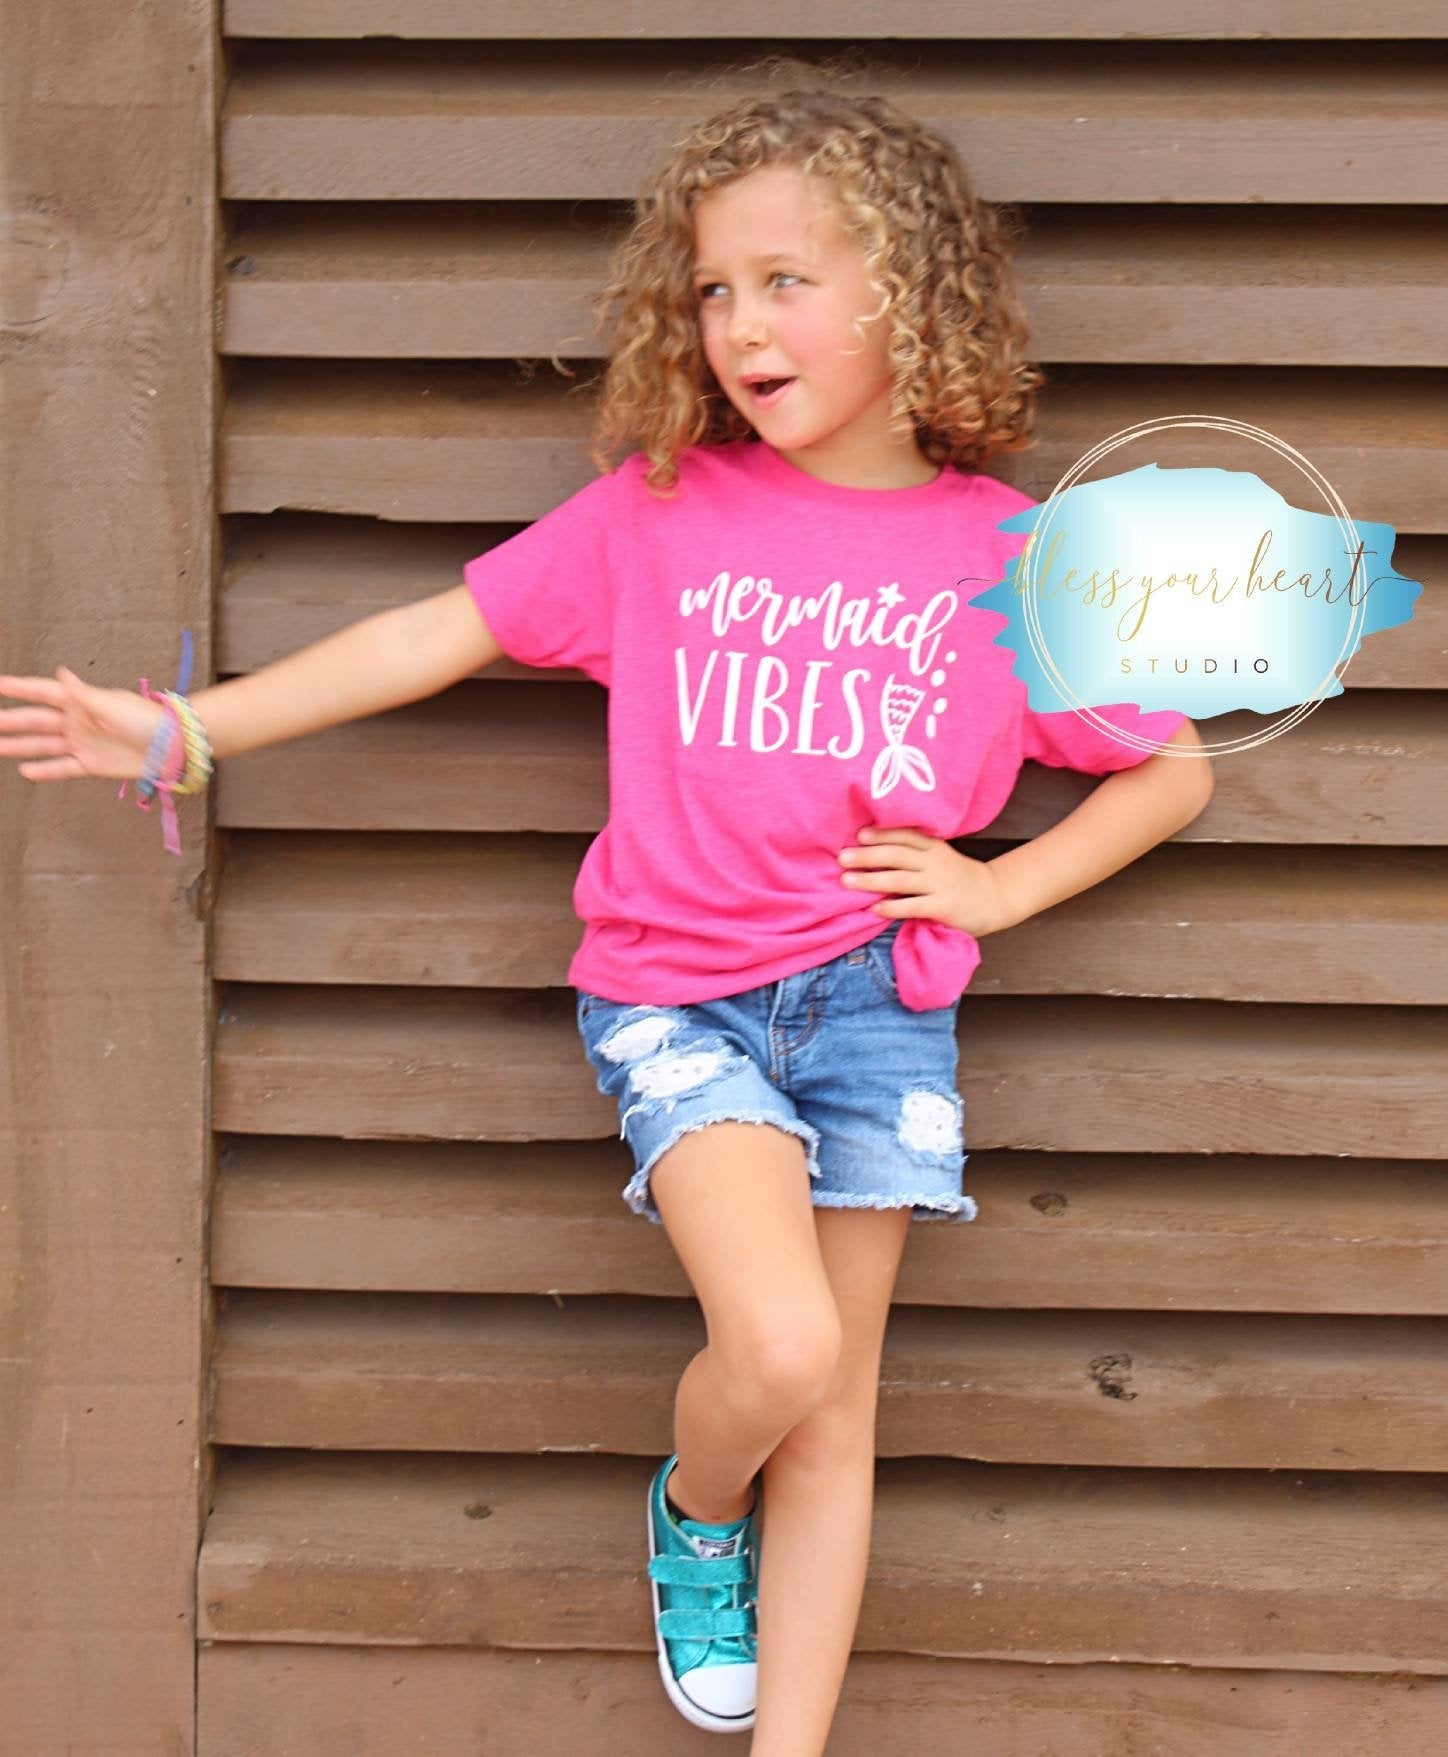 Mermaid Vibes tshirt for girls